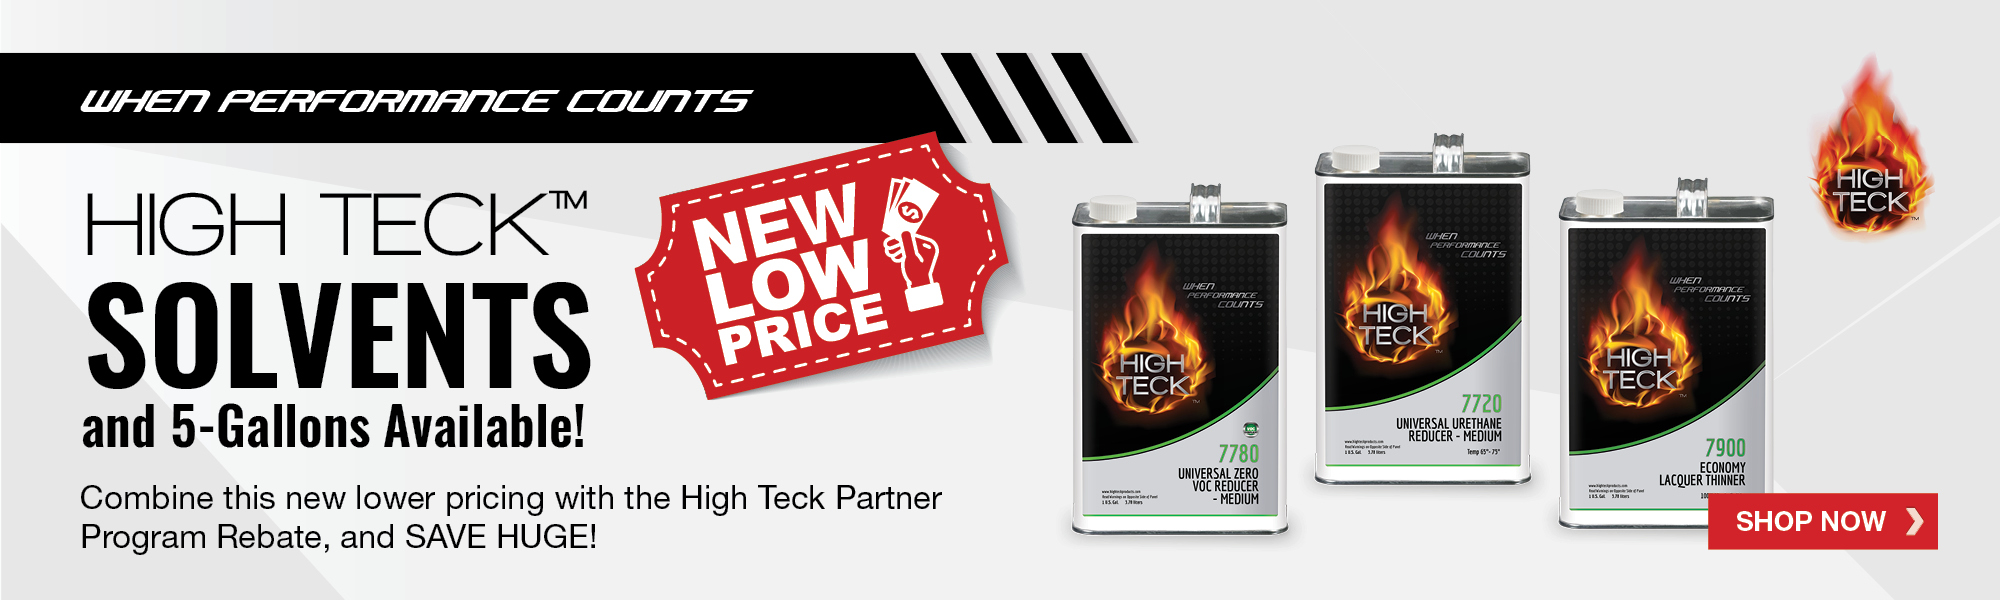 High Teck Solvents New Low Price July 2020